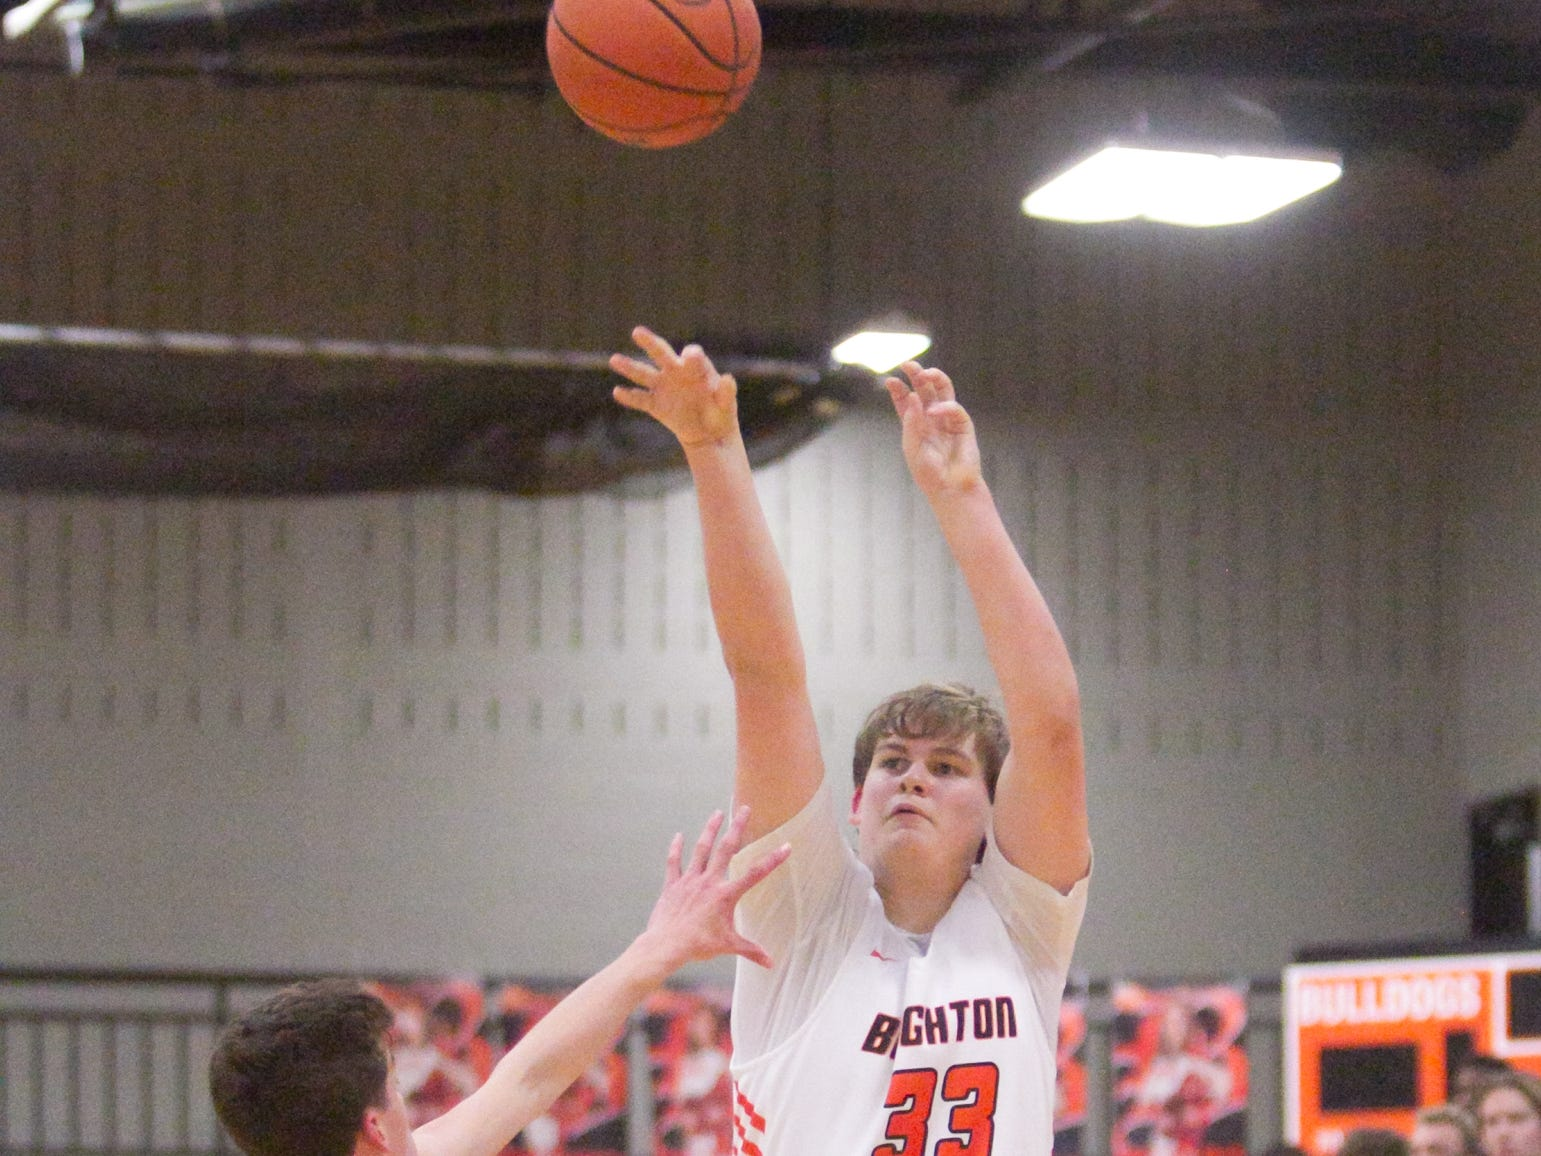 Shane Armstrong's three-pointers kept Brighton close to Howell, who overtook the Bulldogs in overtime Tuesday, Jan. 8, 2019.